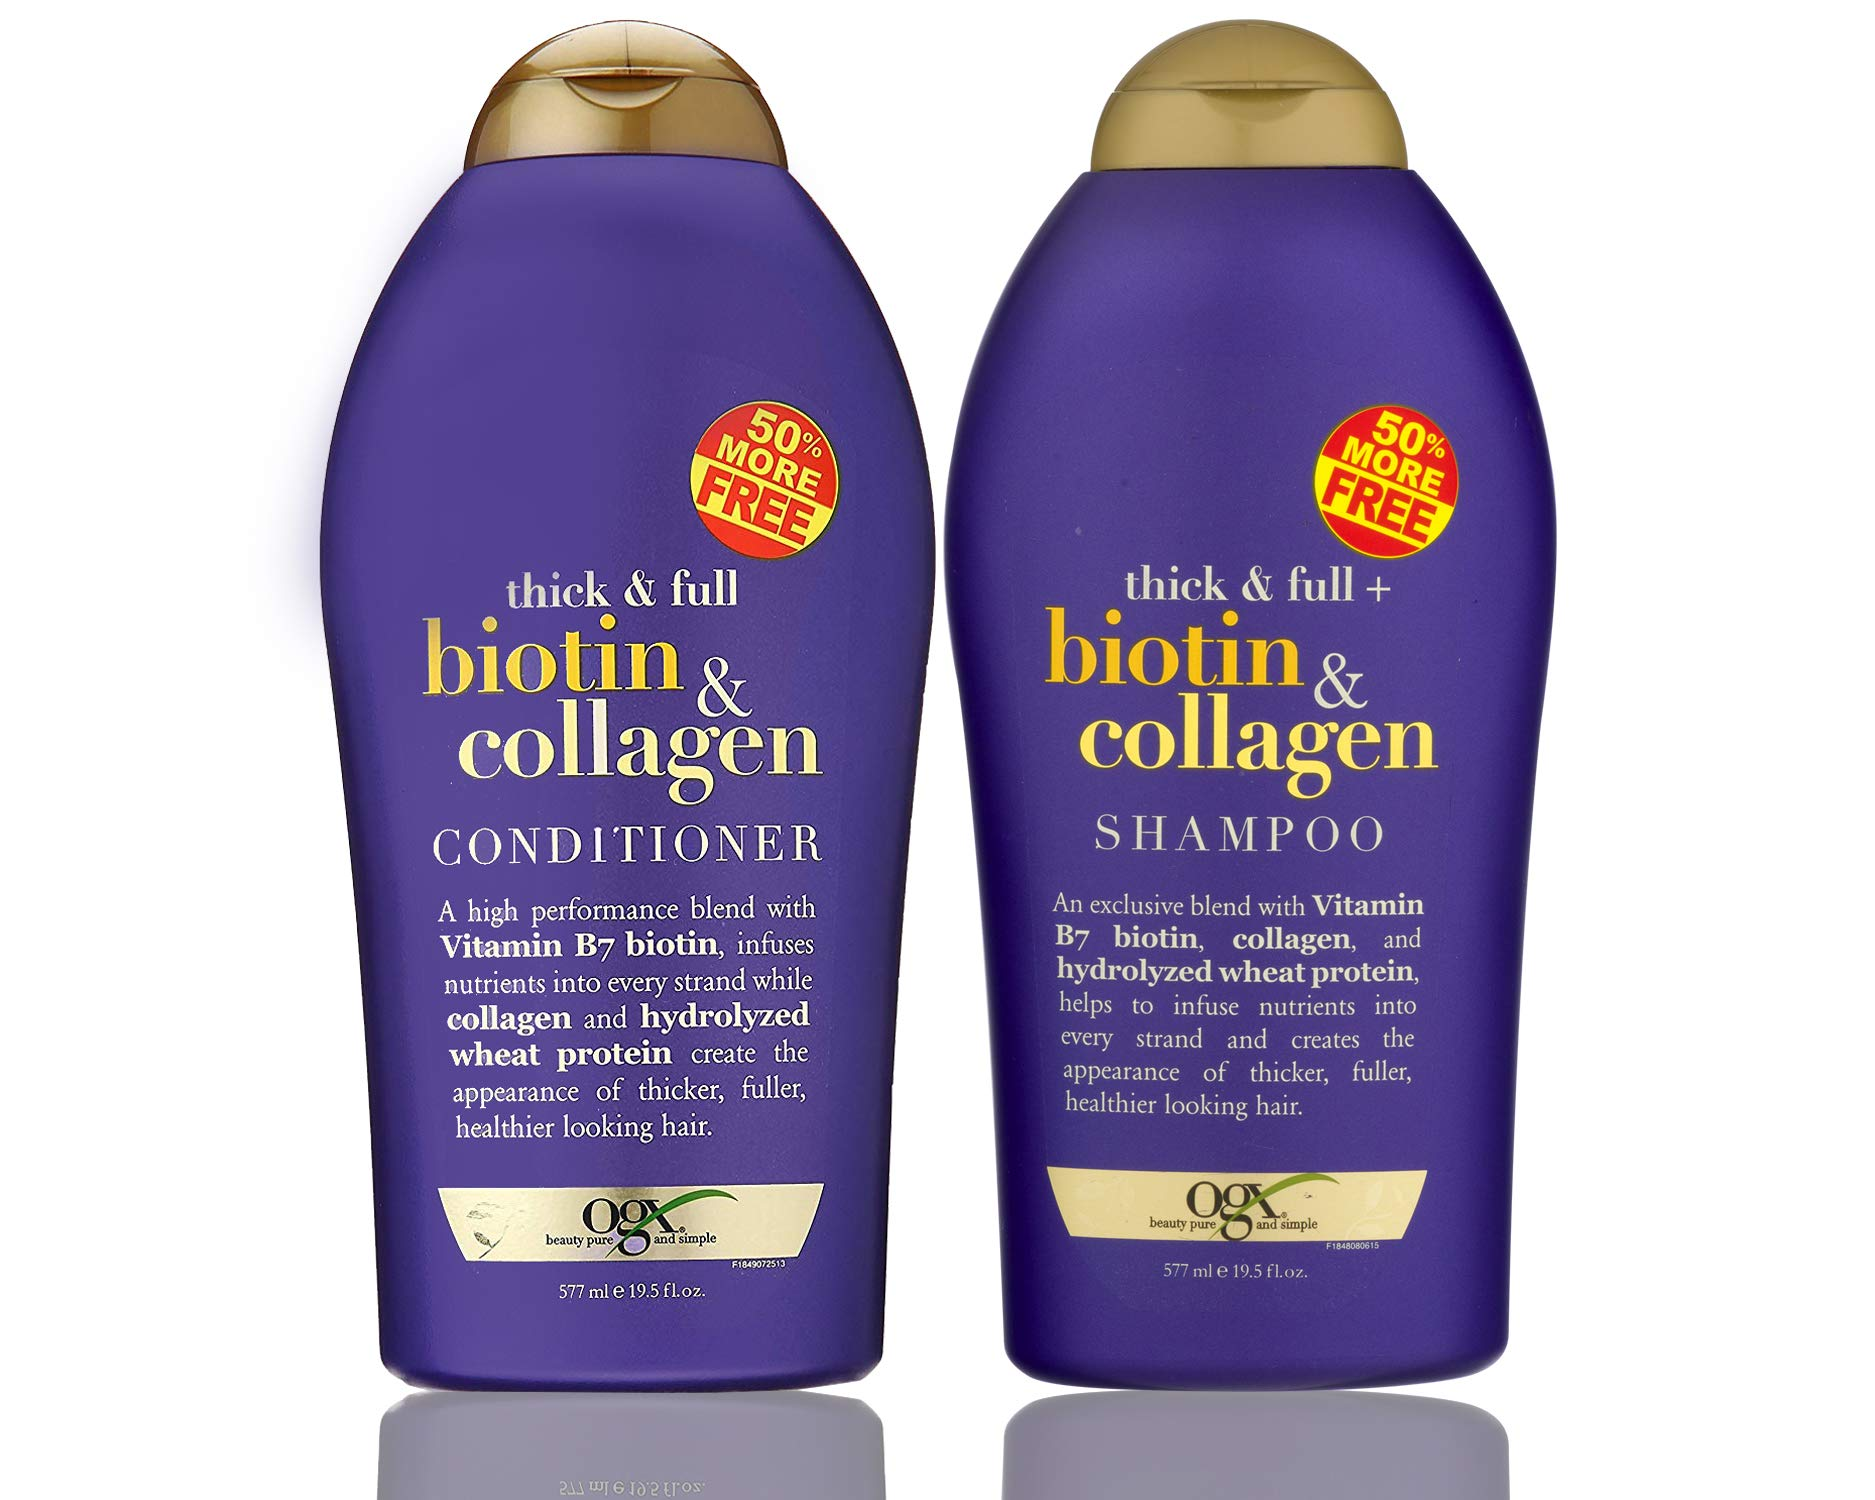 OGX (Thick & Full) Biotin & Collagen Shampoo + Conditioner 19.5oz, Duo-Set by OGX